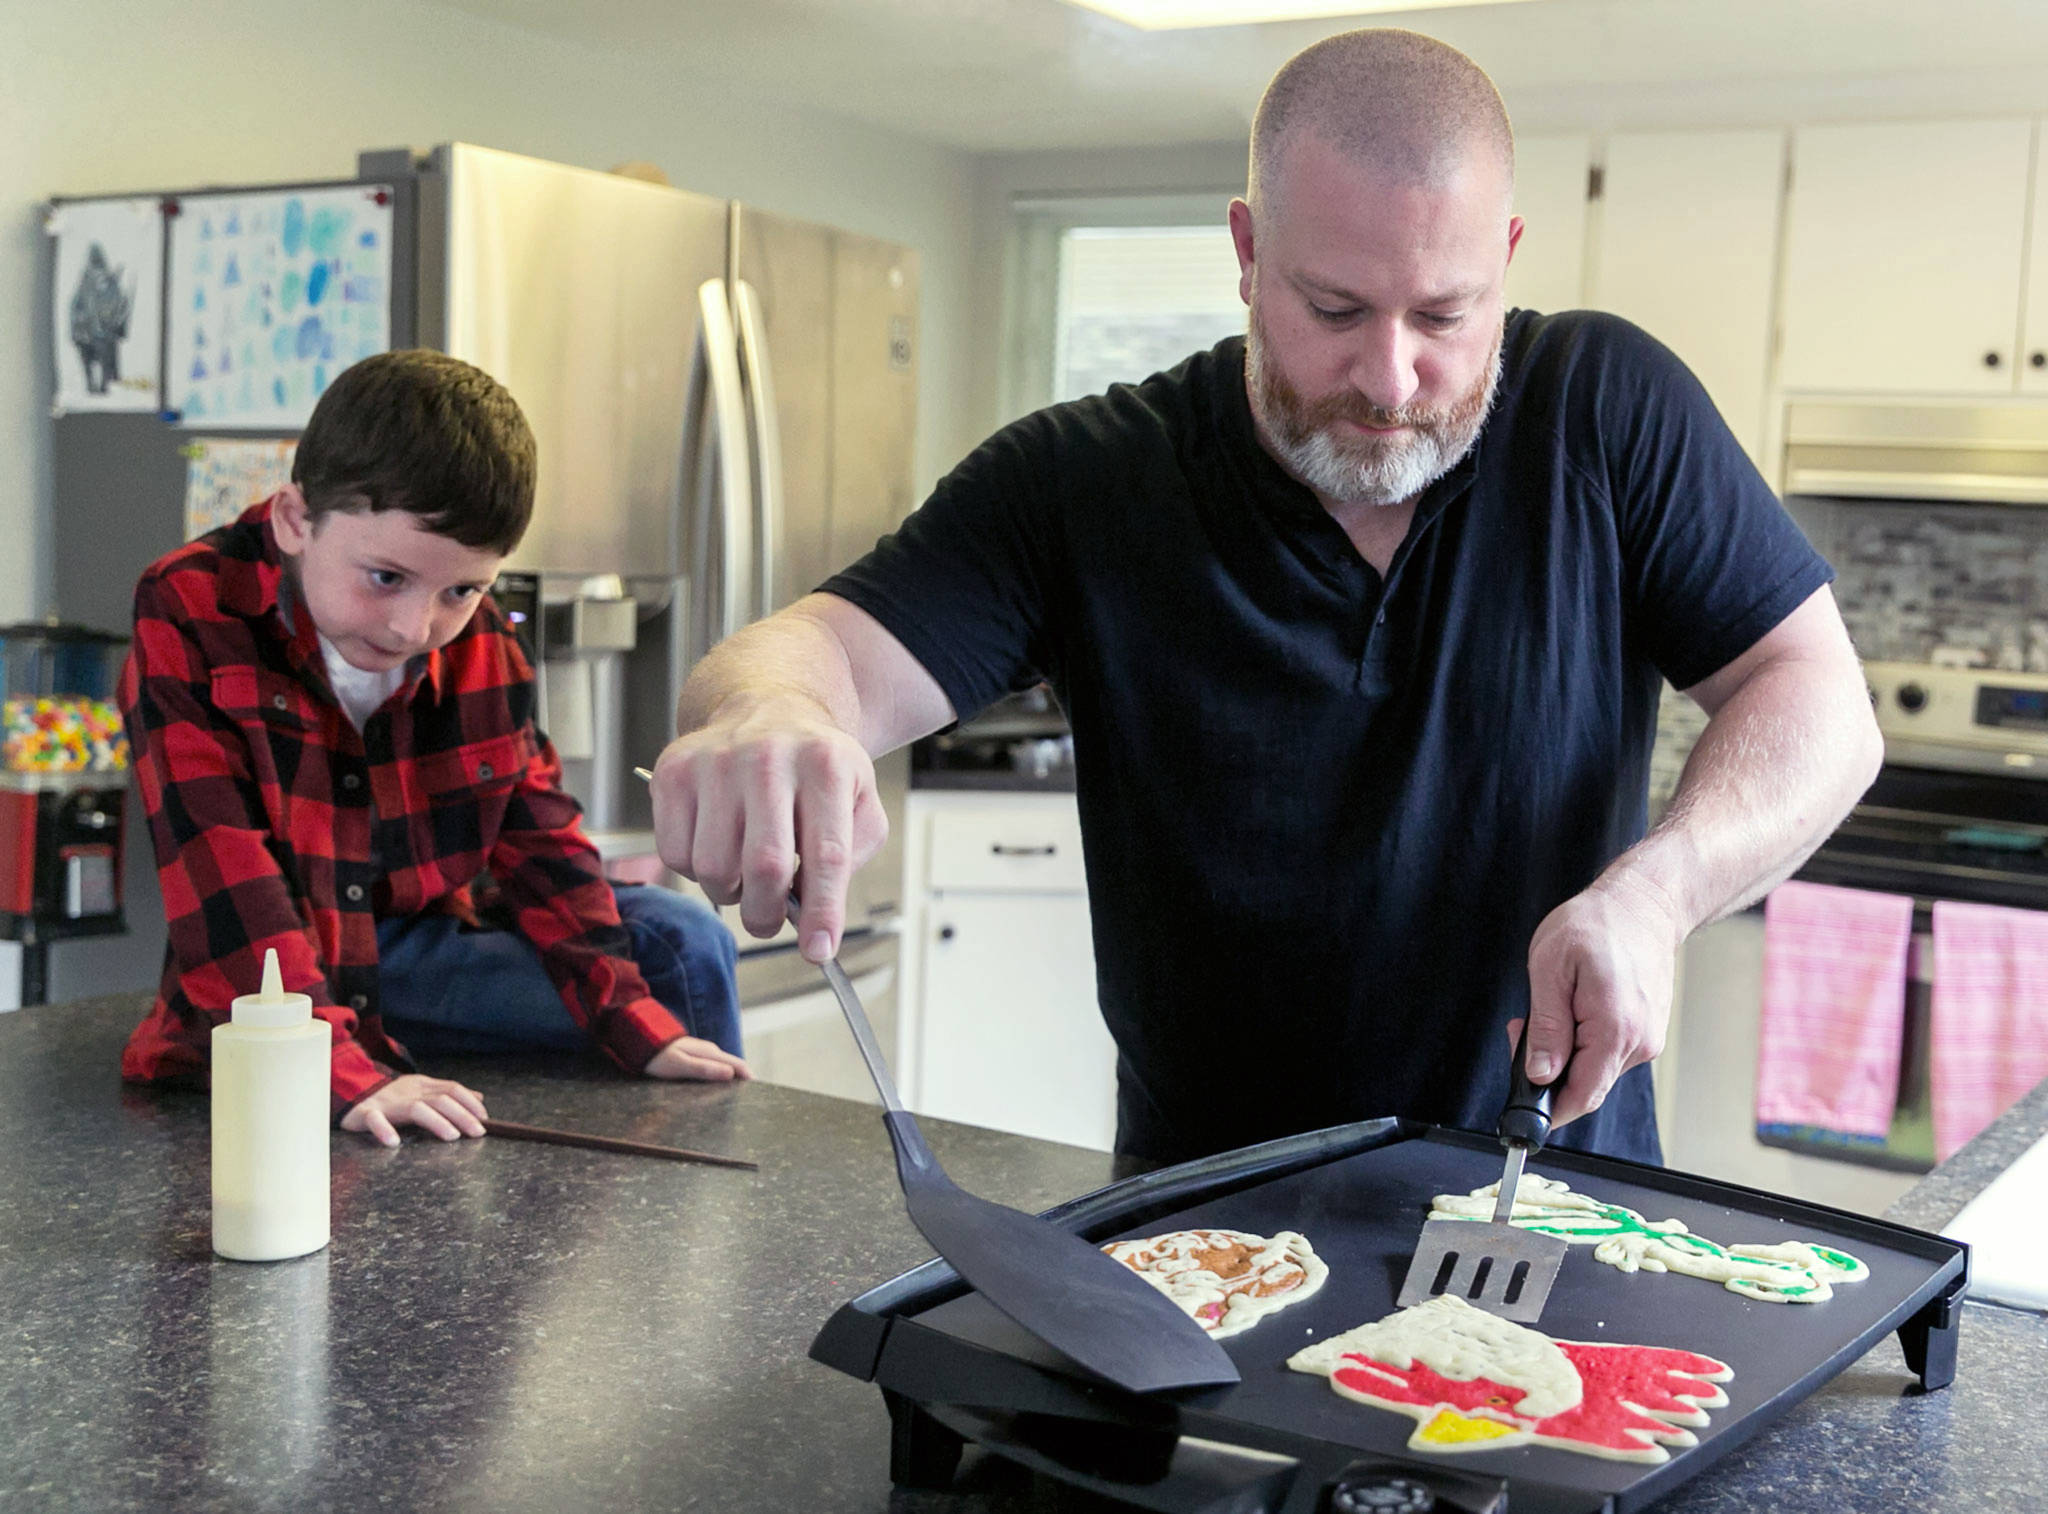 Pancake artist Brek Nebel demonstrates his artistry with his son Koen at their home in Snohomish on Sept. 29. (Kevin Clark / The Herald)